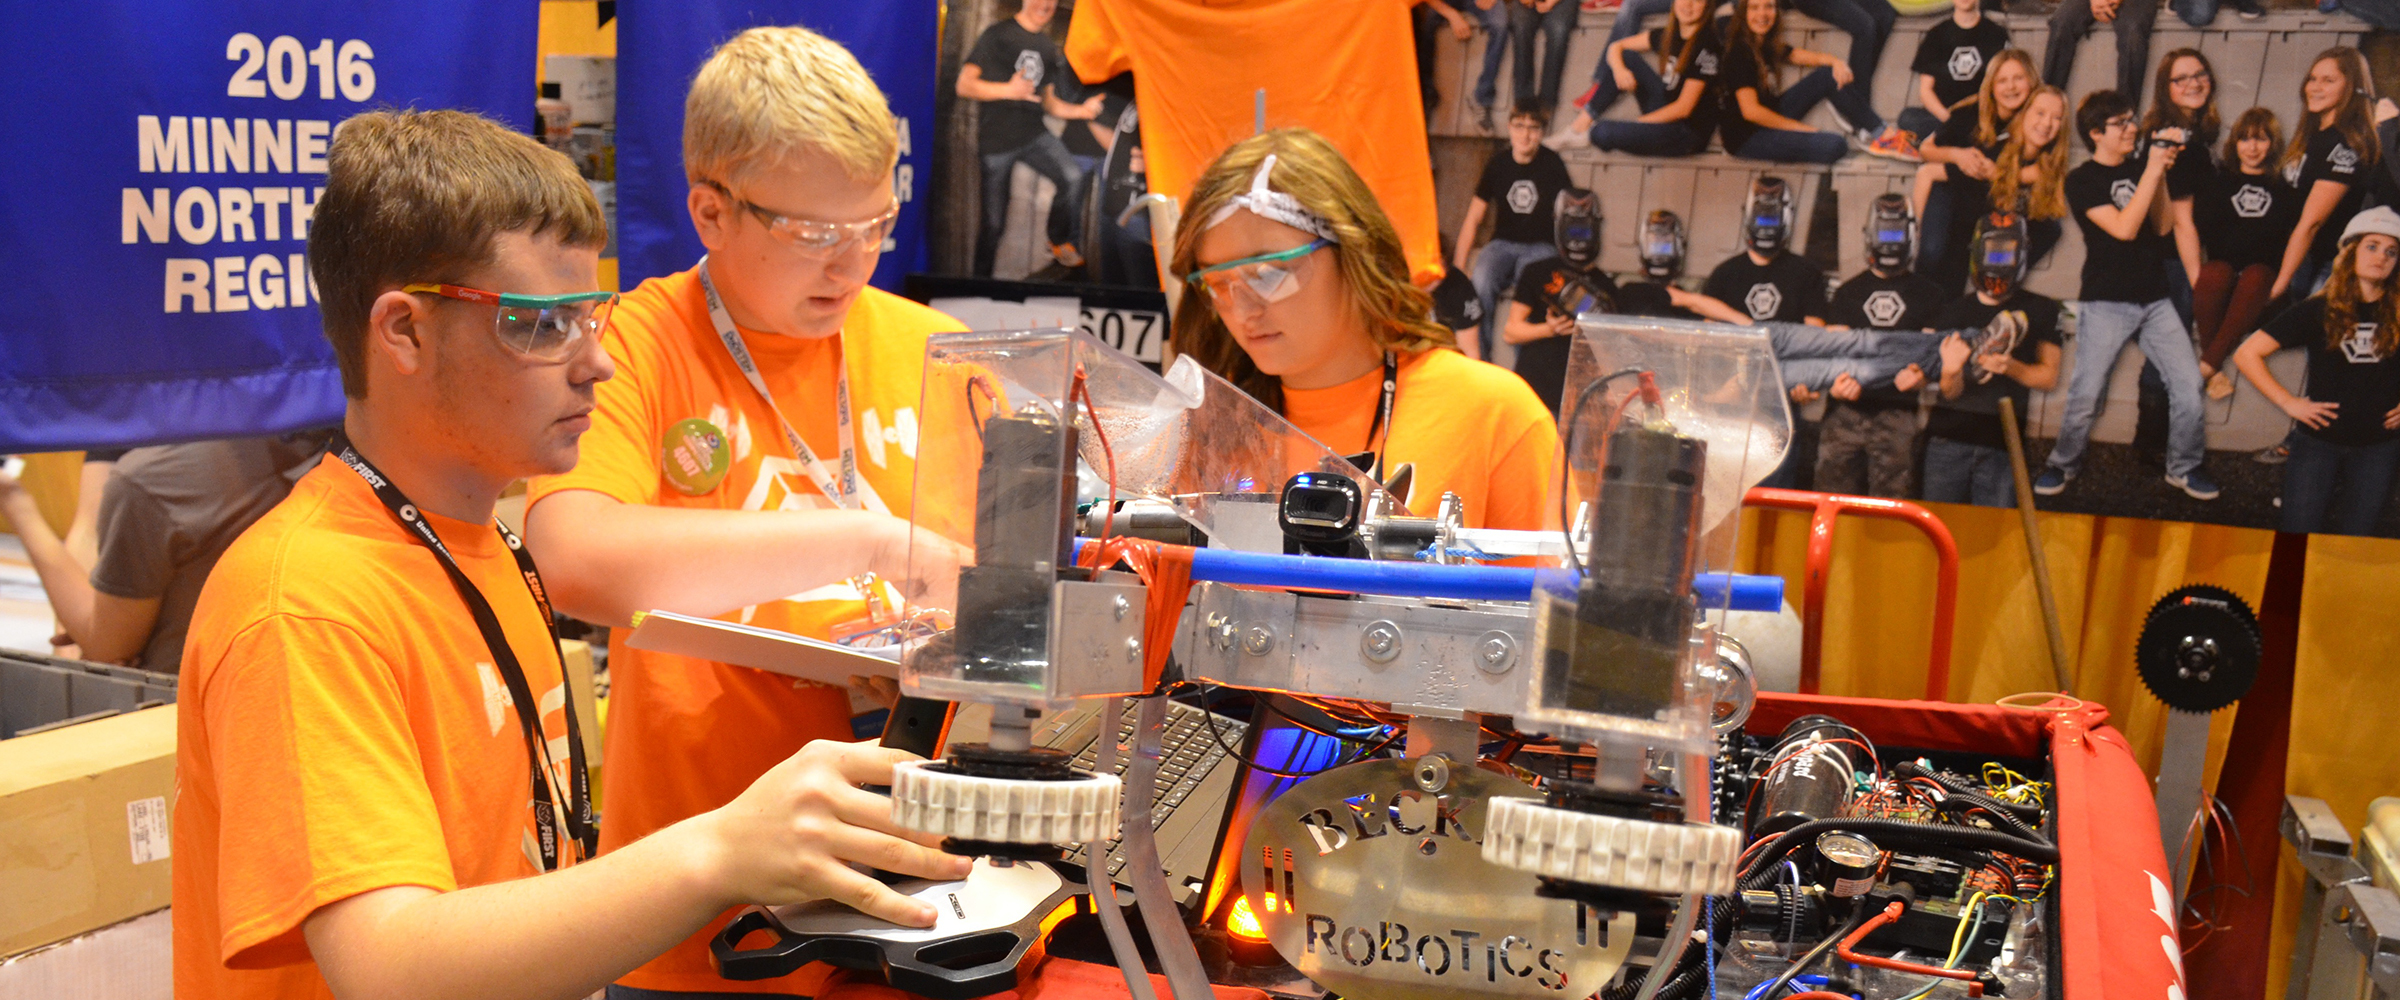 Mouser Electronics will be a major sponsor of the FIRST Championship, April 19-22 in Houston and April 26-29 in St. Louis. The annual robotics event, which fosters STEM education, attracts thousands of high school teams from across the globe. Mouser is sponsoring the Hall of Fame area, which honors past winners of the Chairman's Award. Photo from 2016 FIRST Championship. (Photo: Business Wire)